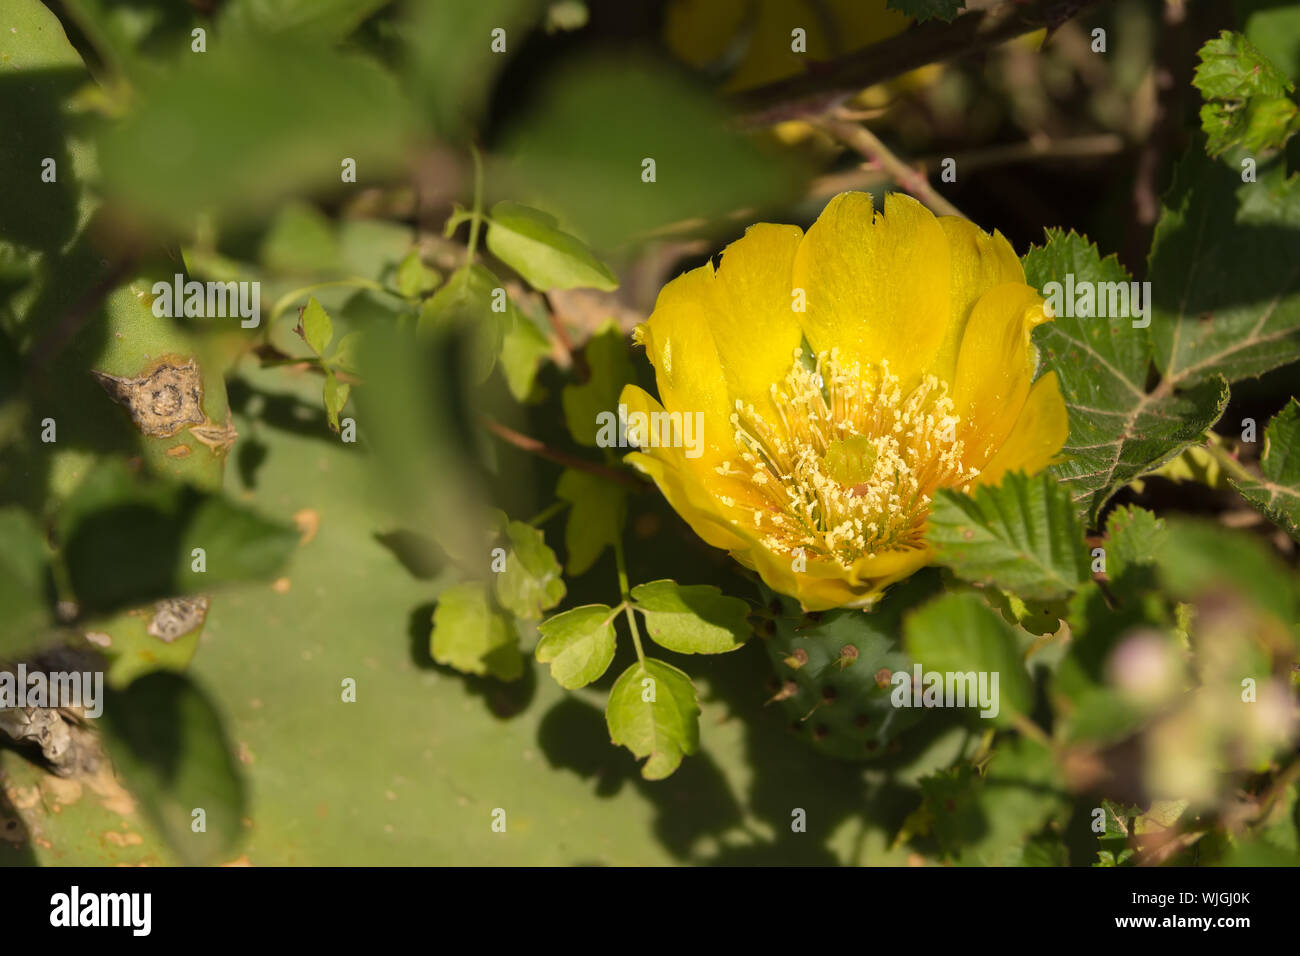 Beautiful flower of Prickly Pear in spring, fichi d'india are a typical fruit of the south of Italy, growing in Apulia, Salento Stock Photo